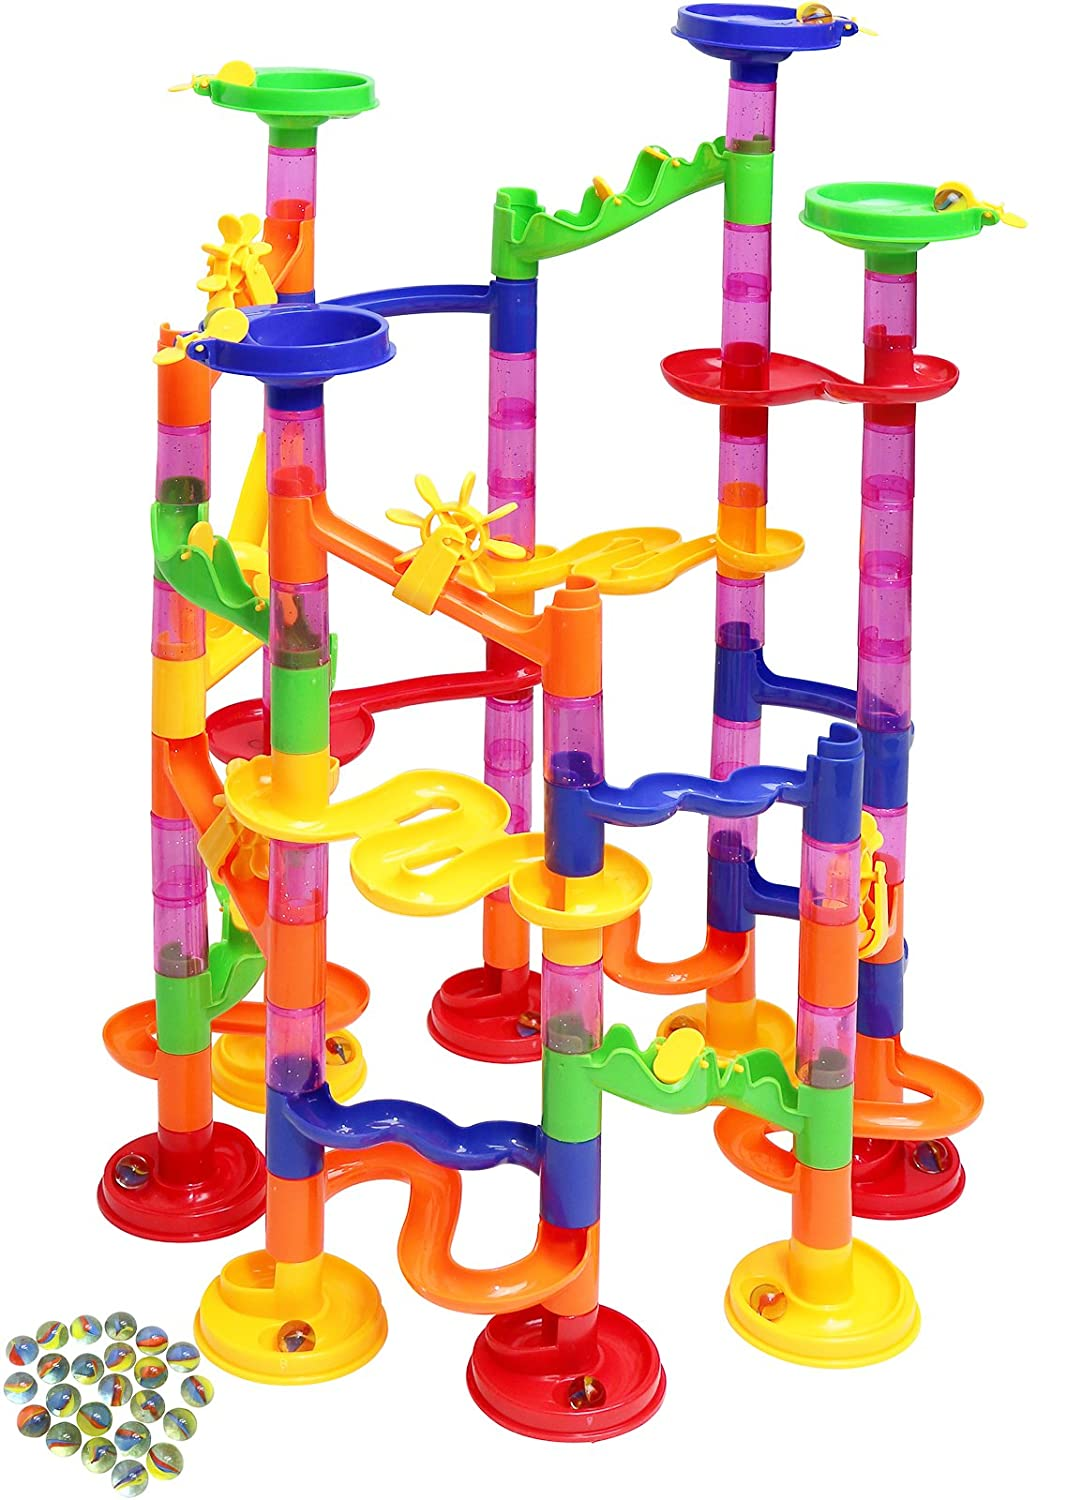 Kiddie Play Marble Run Set for Kids 75 Translucent Marbulous Pieces 30 Glass Marbles